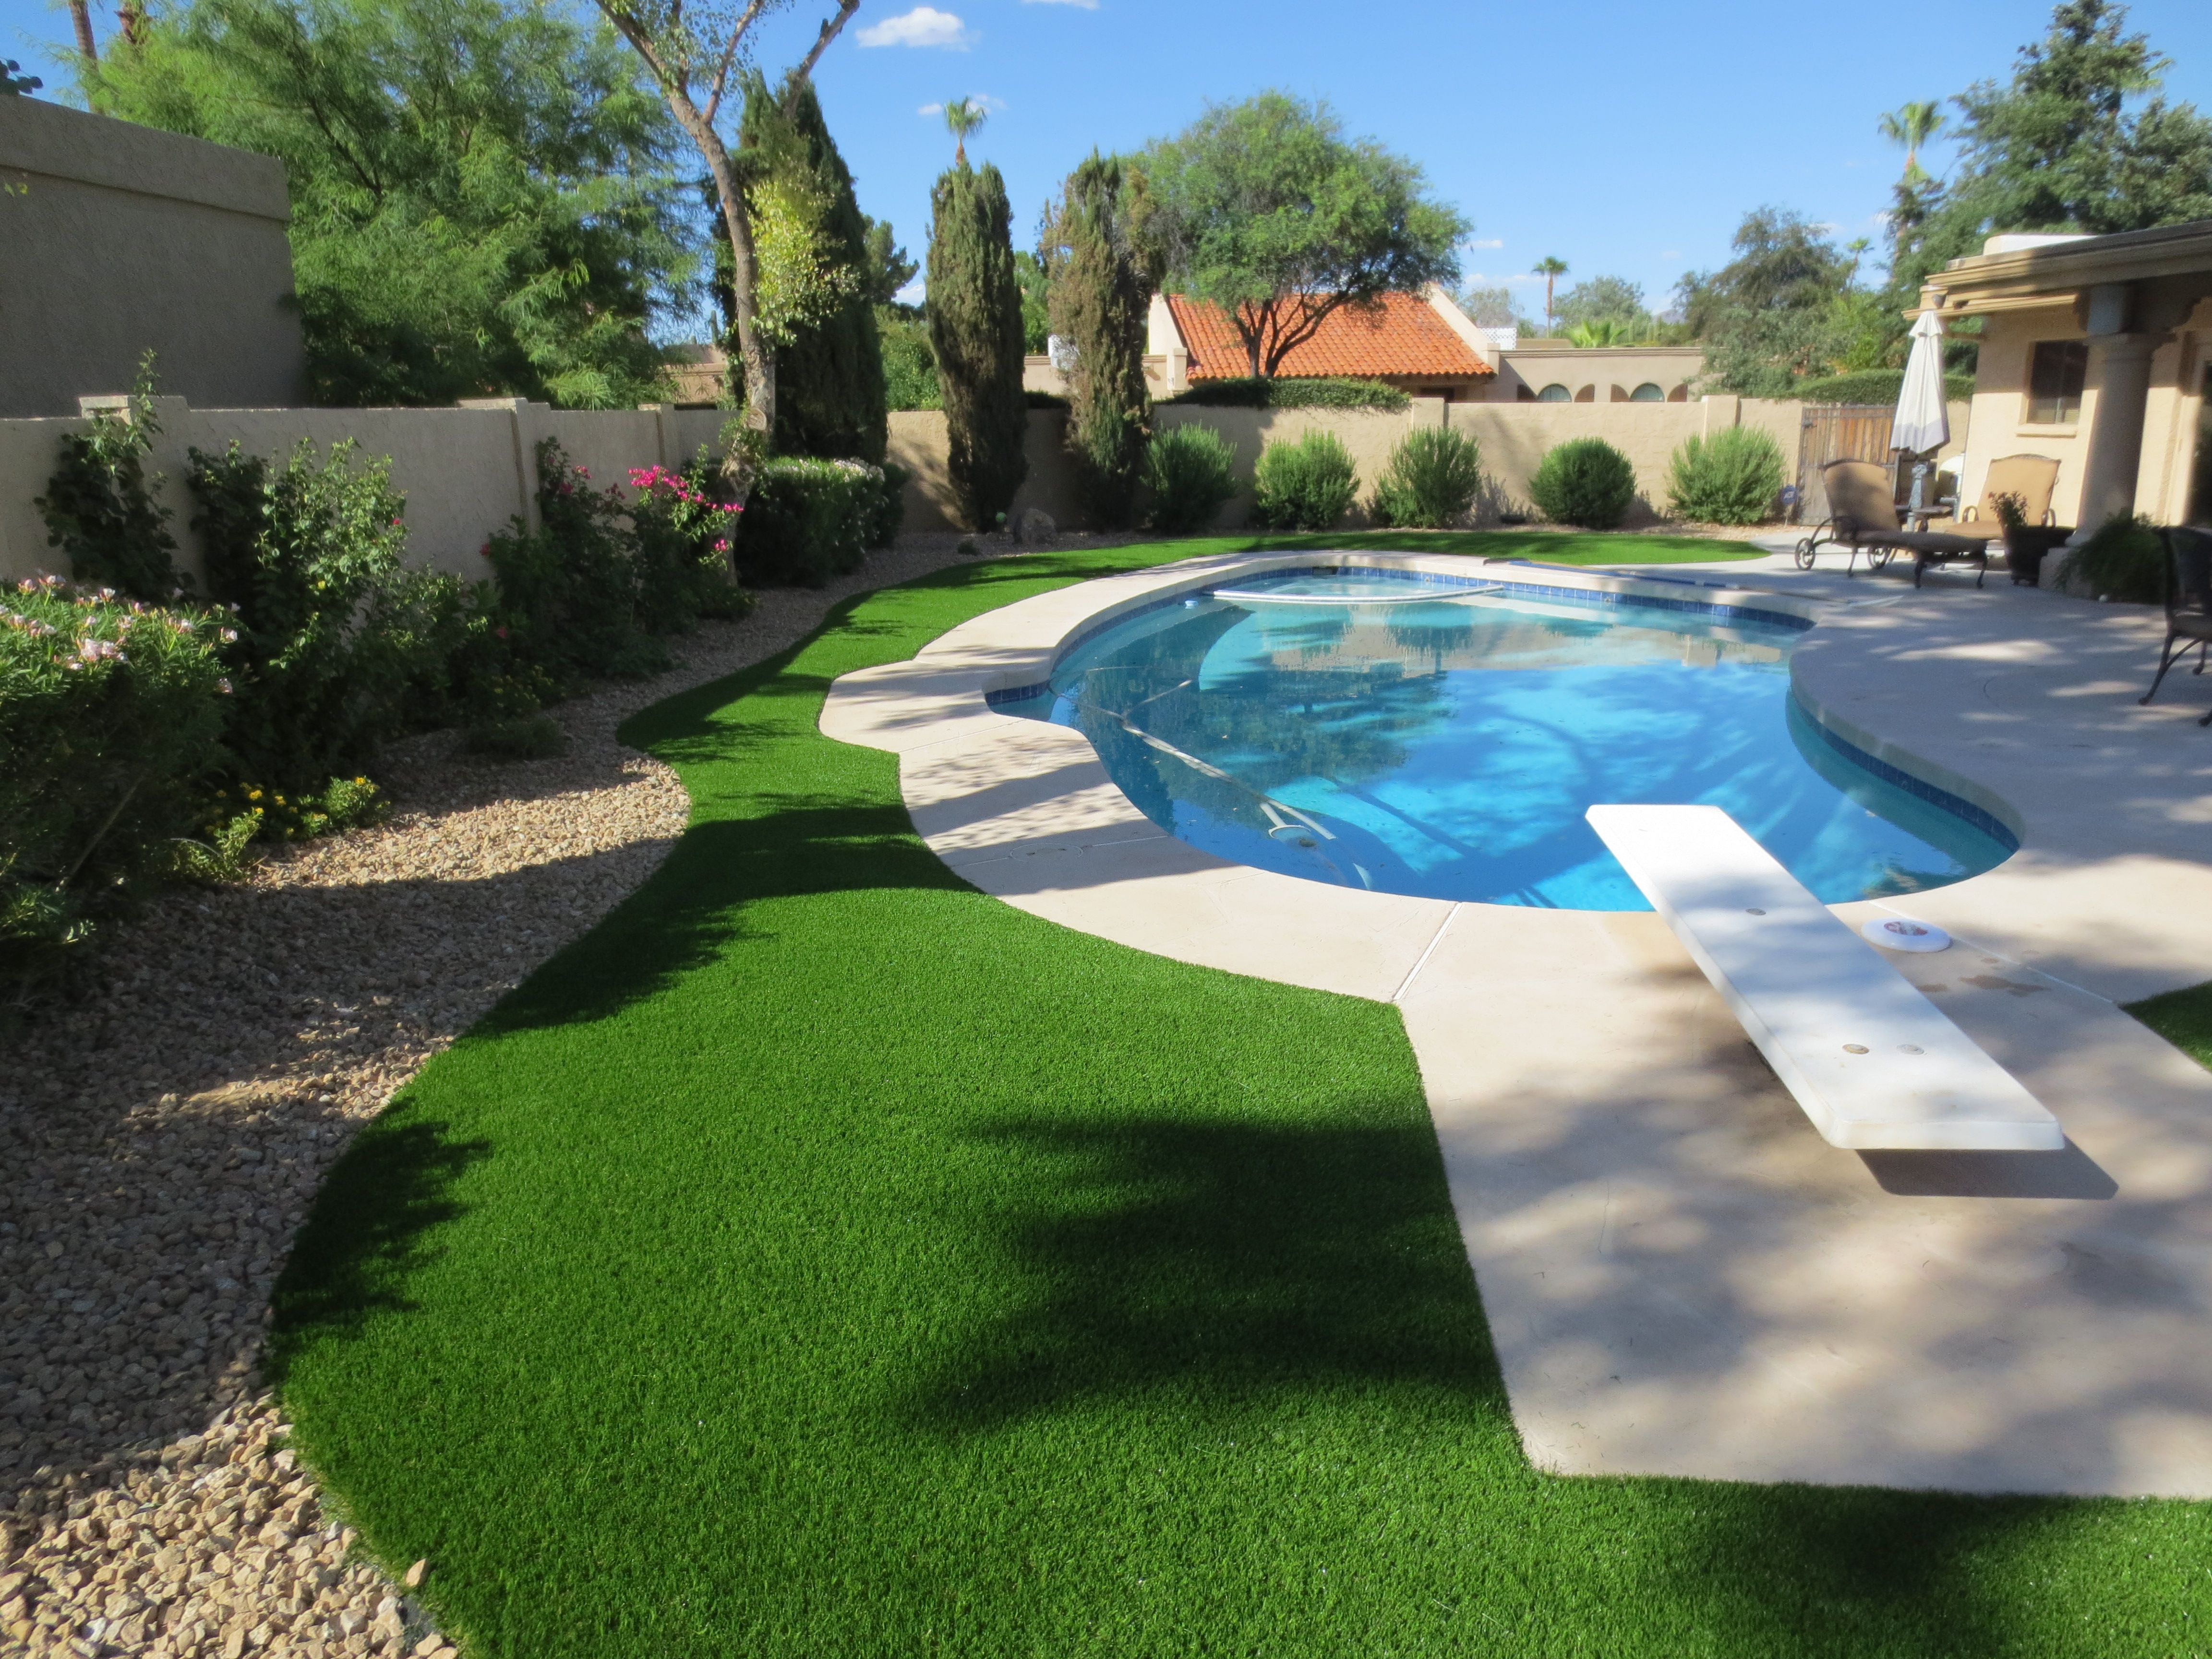 Artificial Grass Next To Your Pool Creates A Backyard Oasis Free